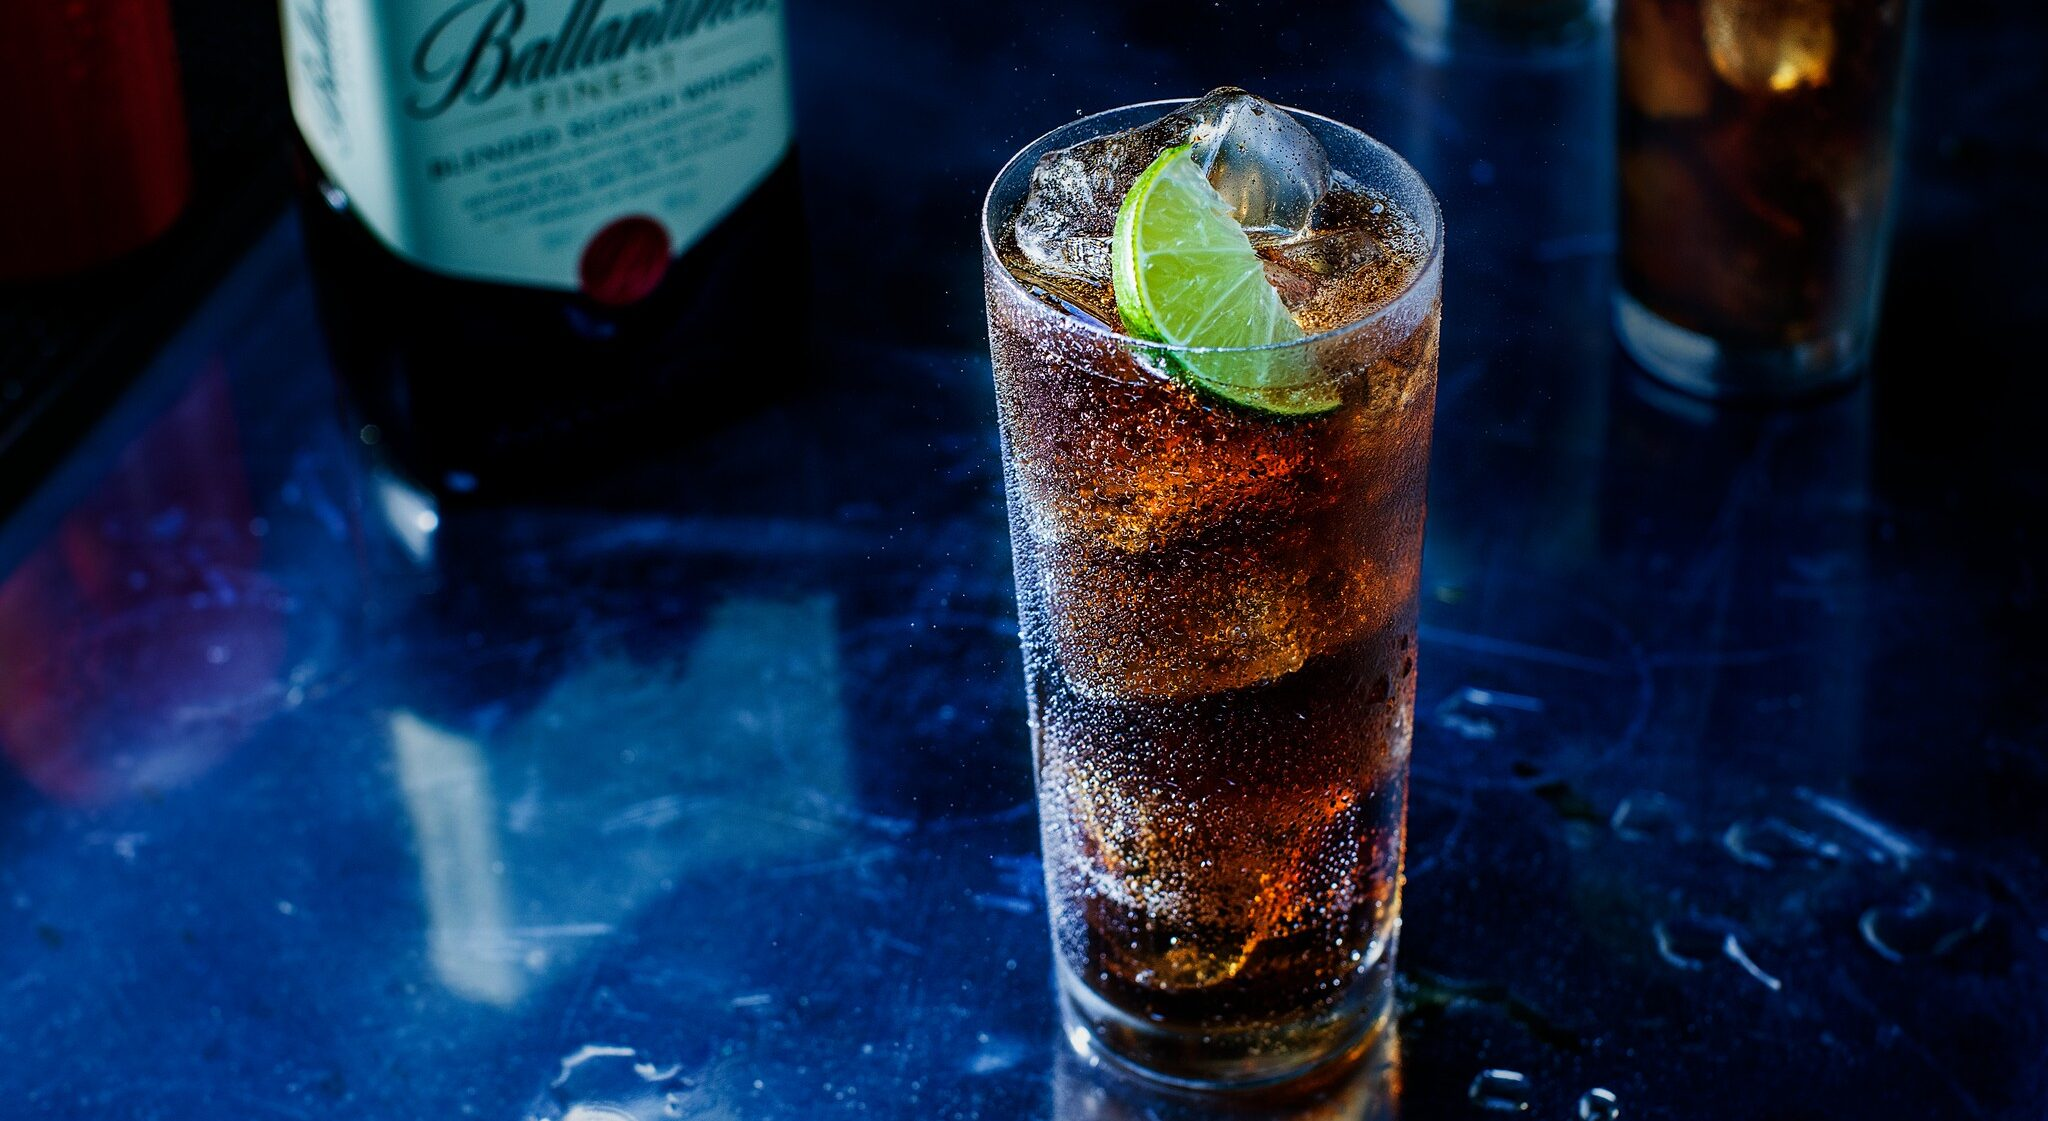 Ballantine's Finest & Cola